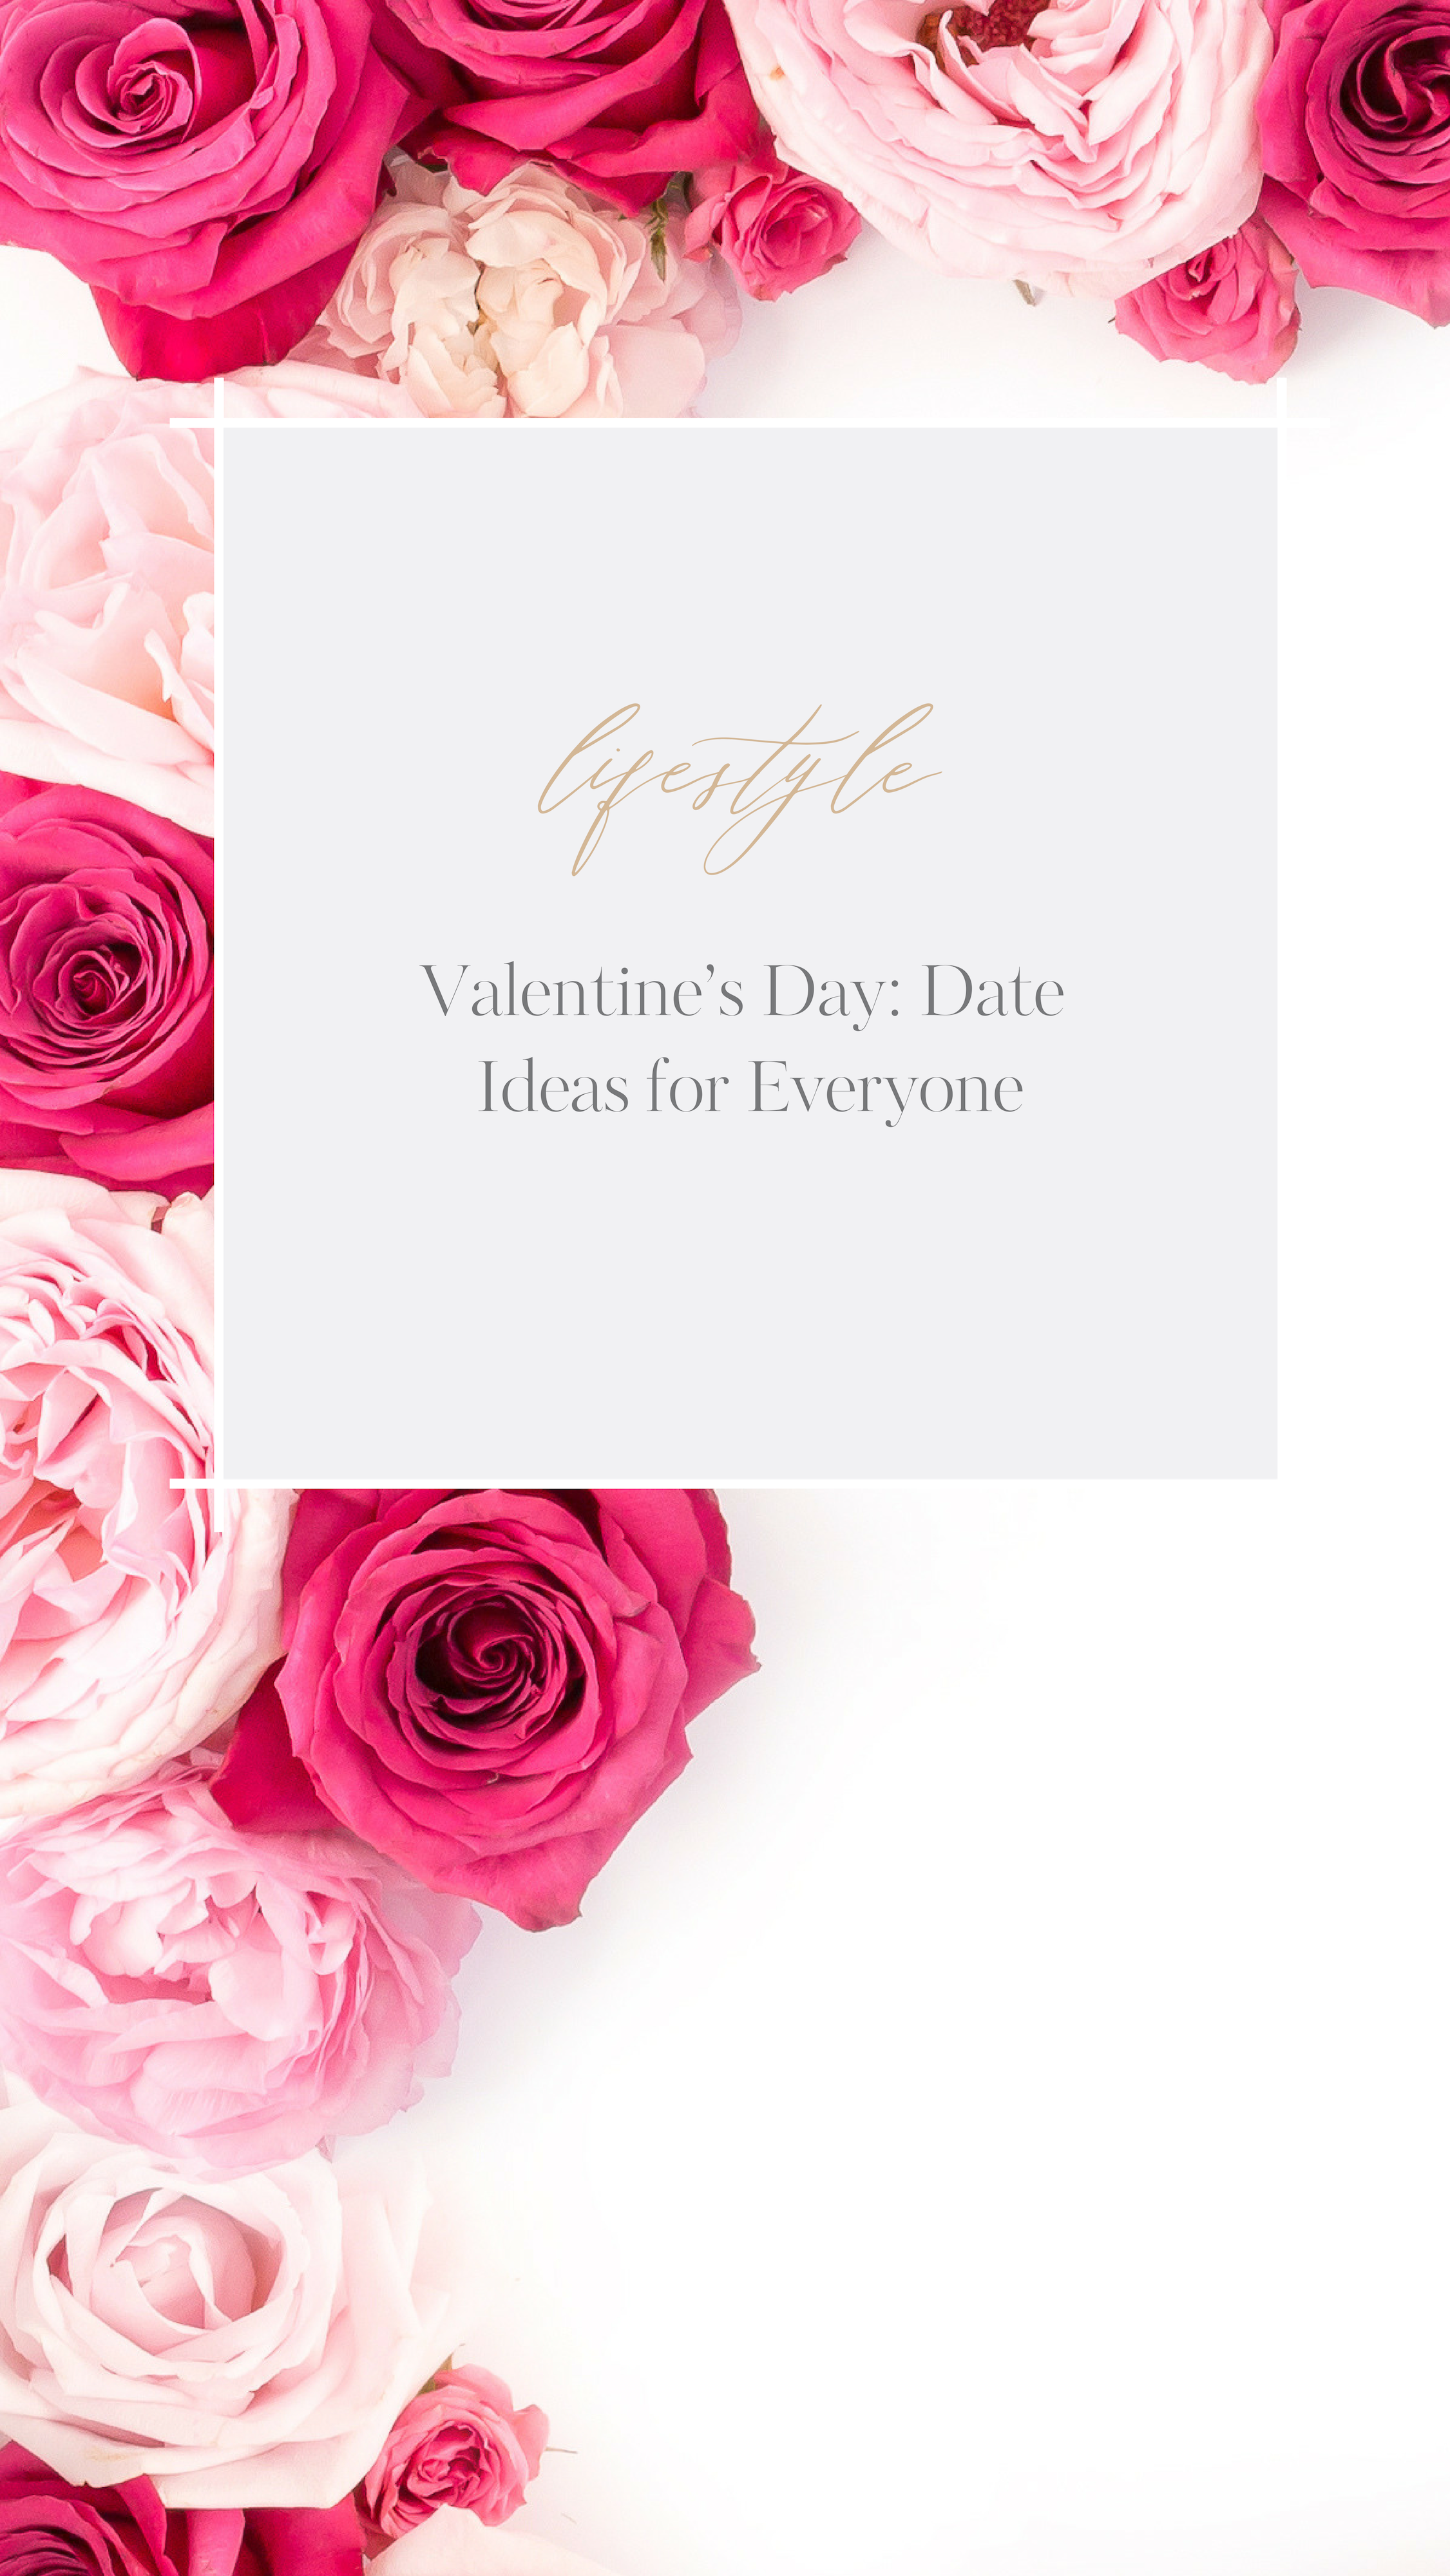 Valentine's Day_ Date Ideas for Everyone.png